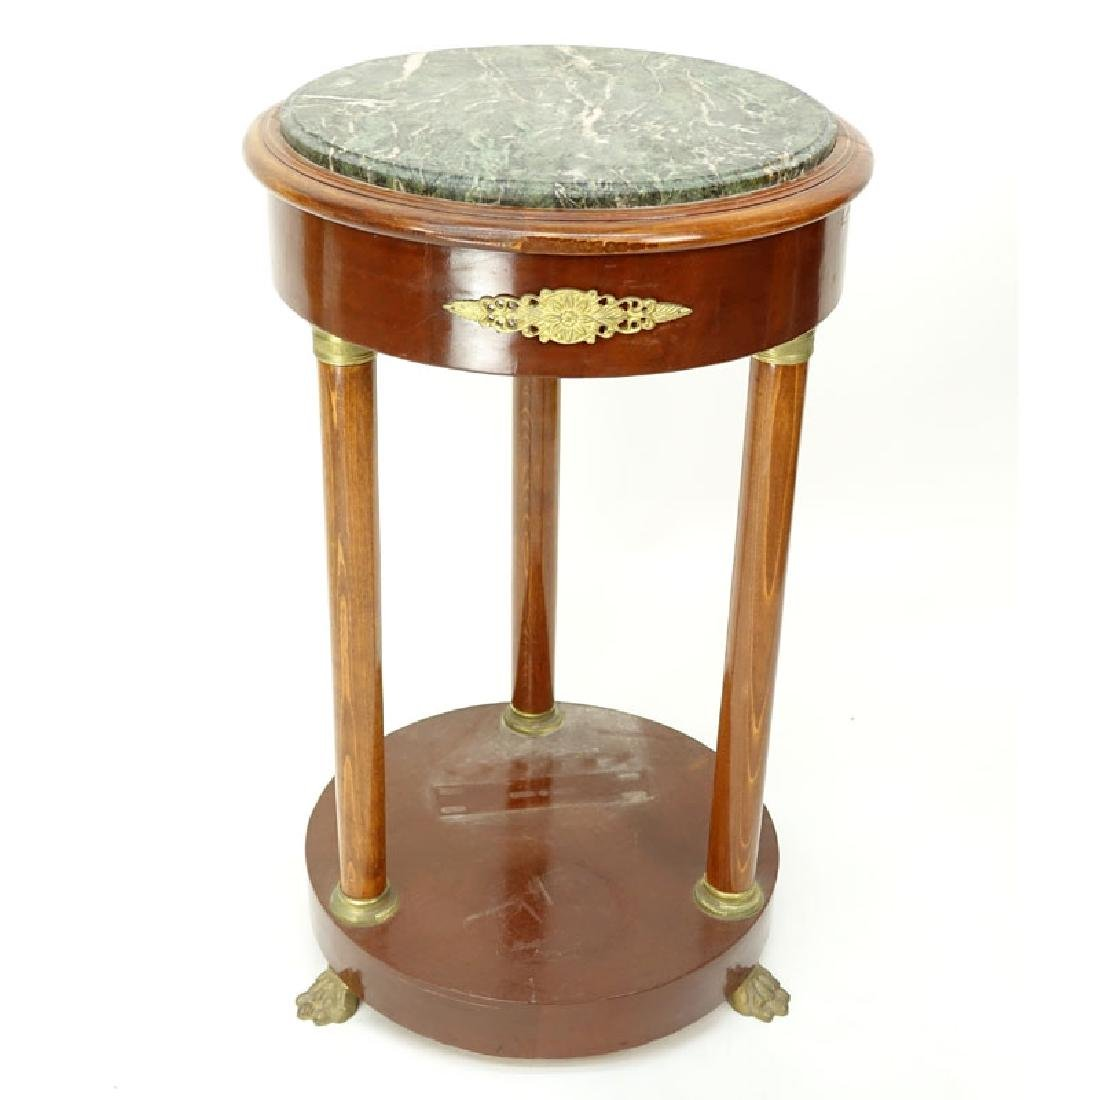 20th Century Empire Style Round Marble Top Table. Gilt